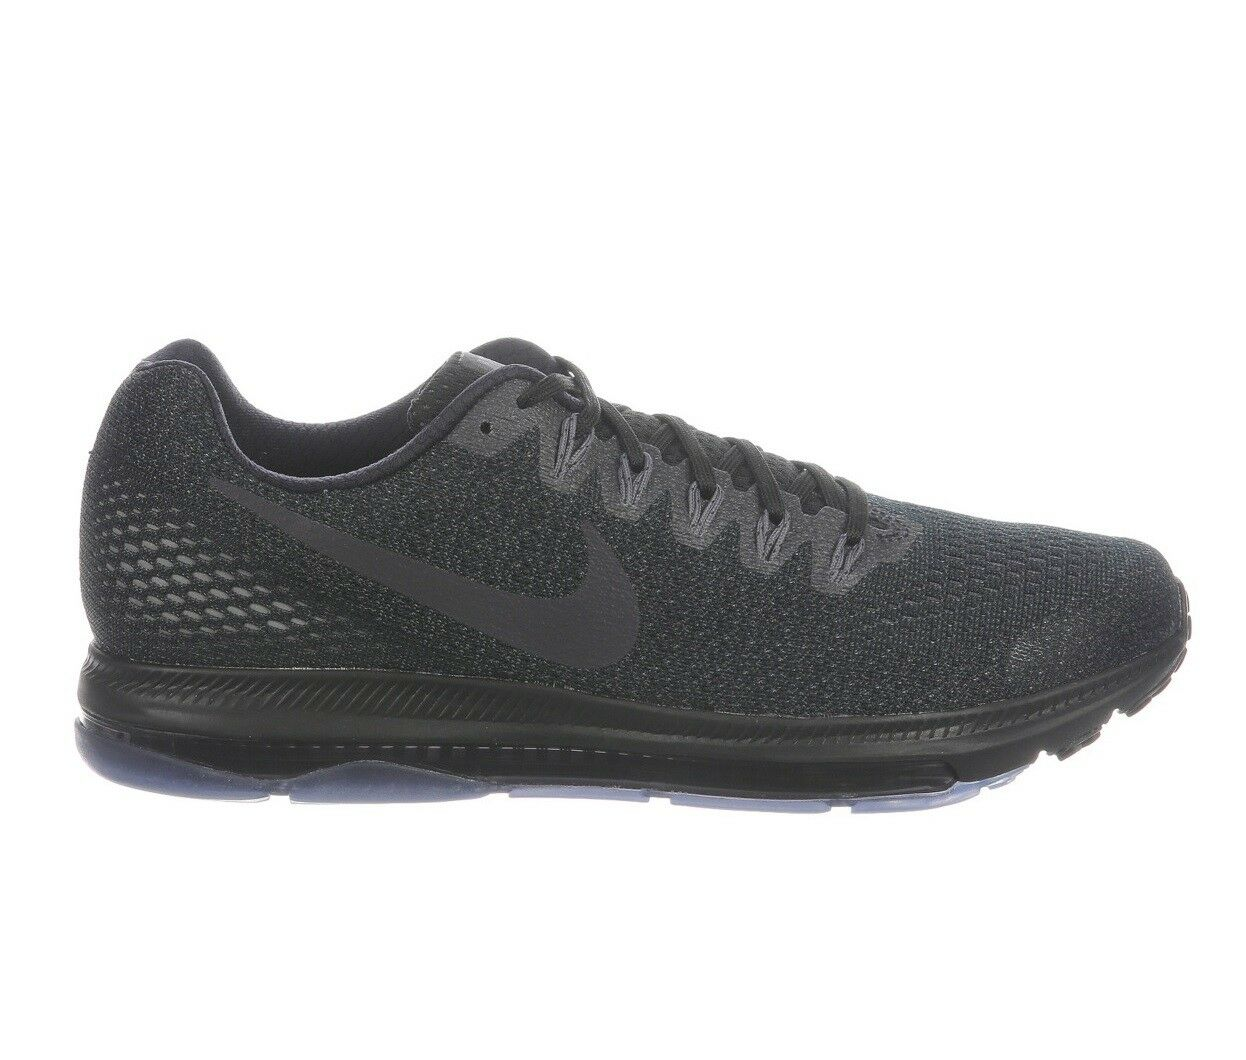 Nike Zoom All Out Low Mens 878670-011 Black Aura Grey Running Shoes Size 7